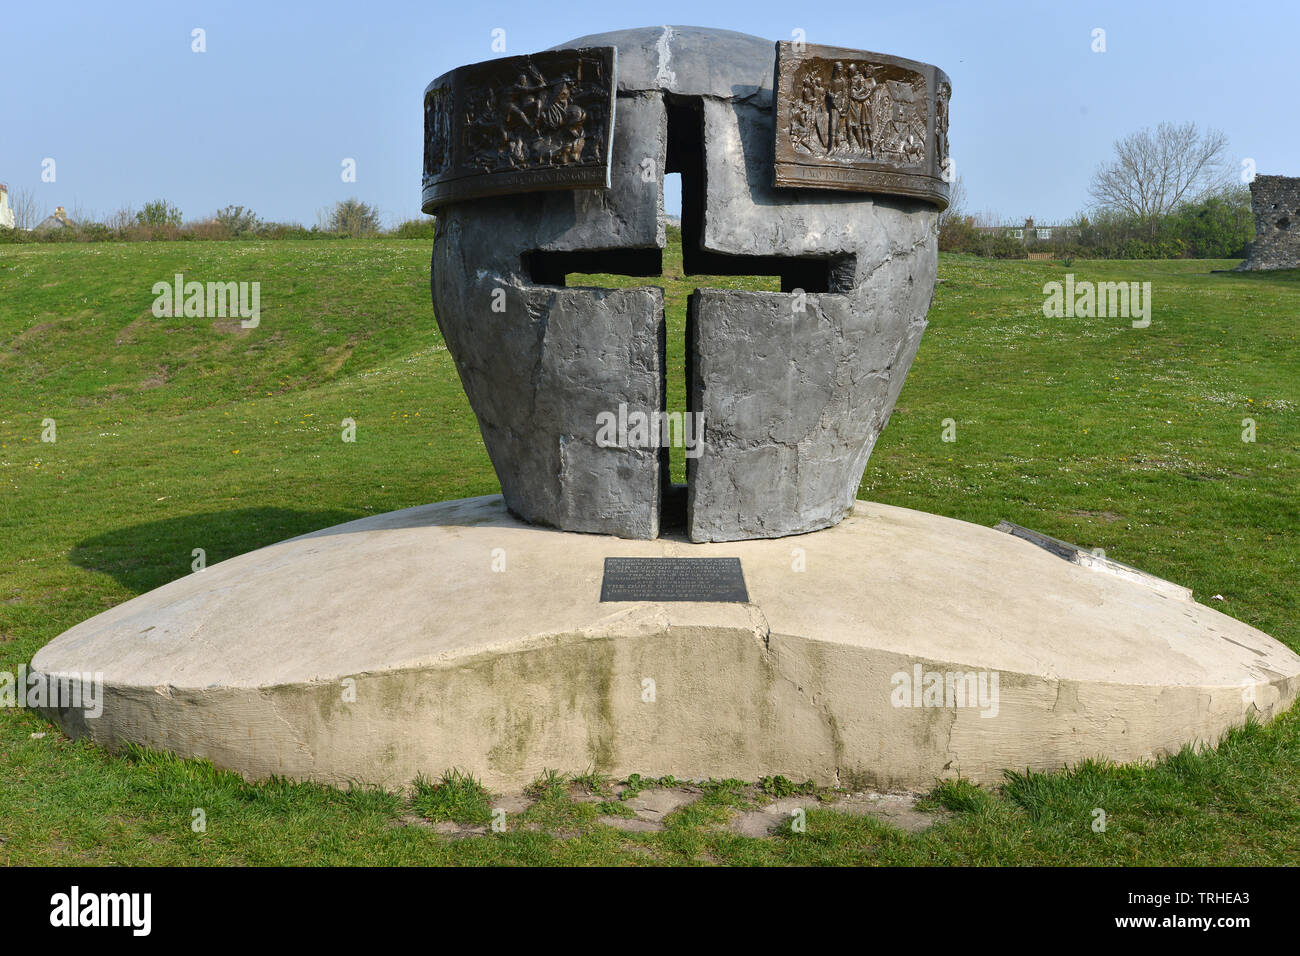 Battle of Lewes memorial, by Enzo Plazzotta, Lewes Priory ruins, East Sussex, UK - Stock Image